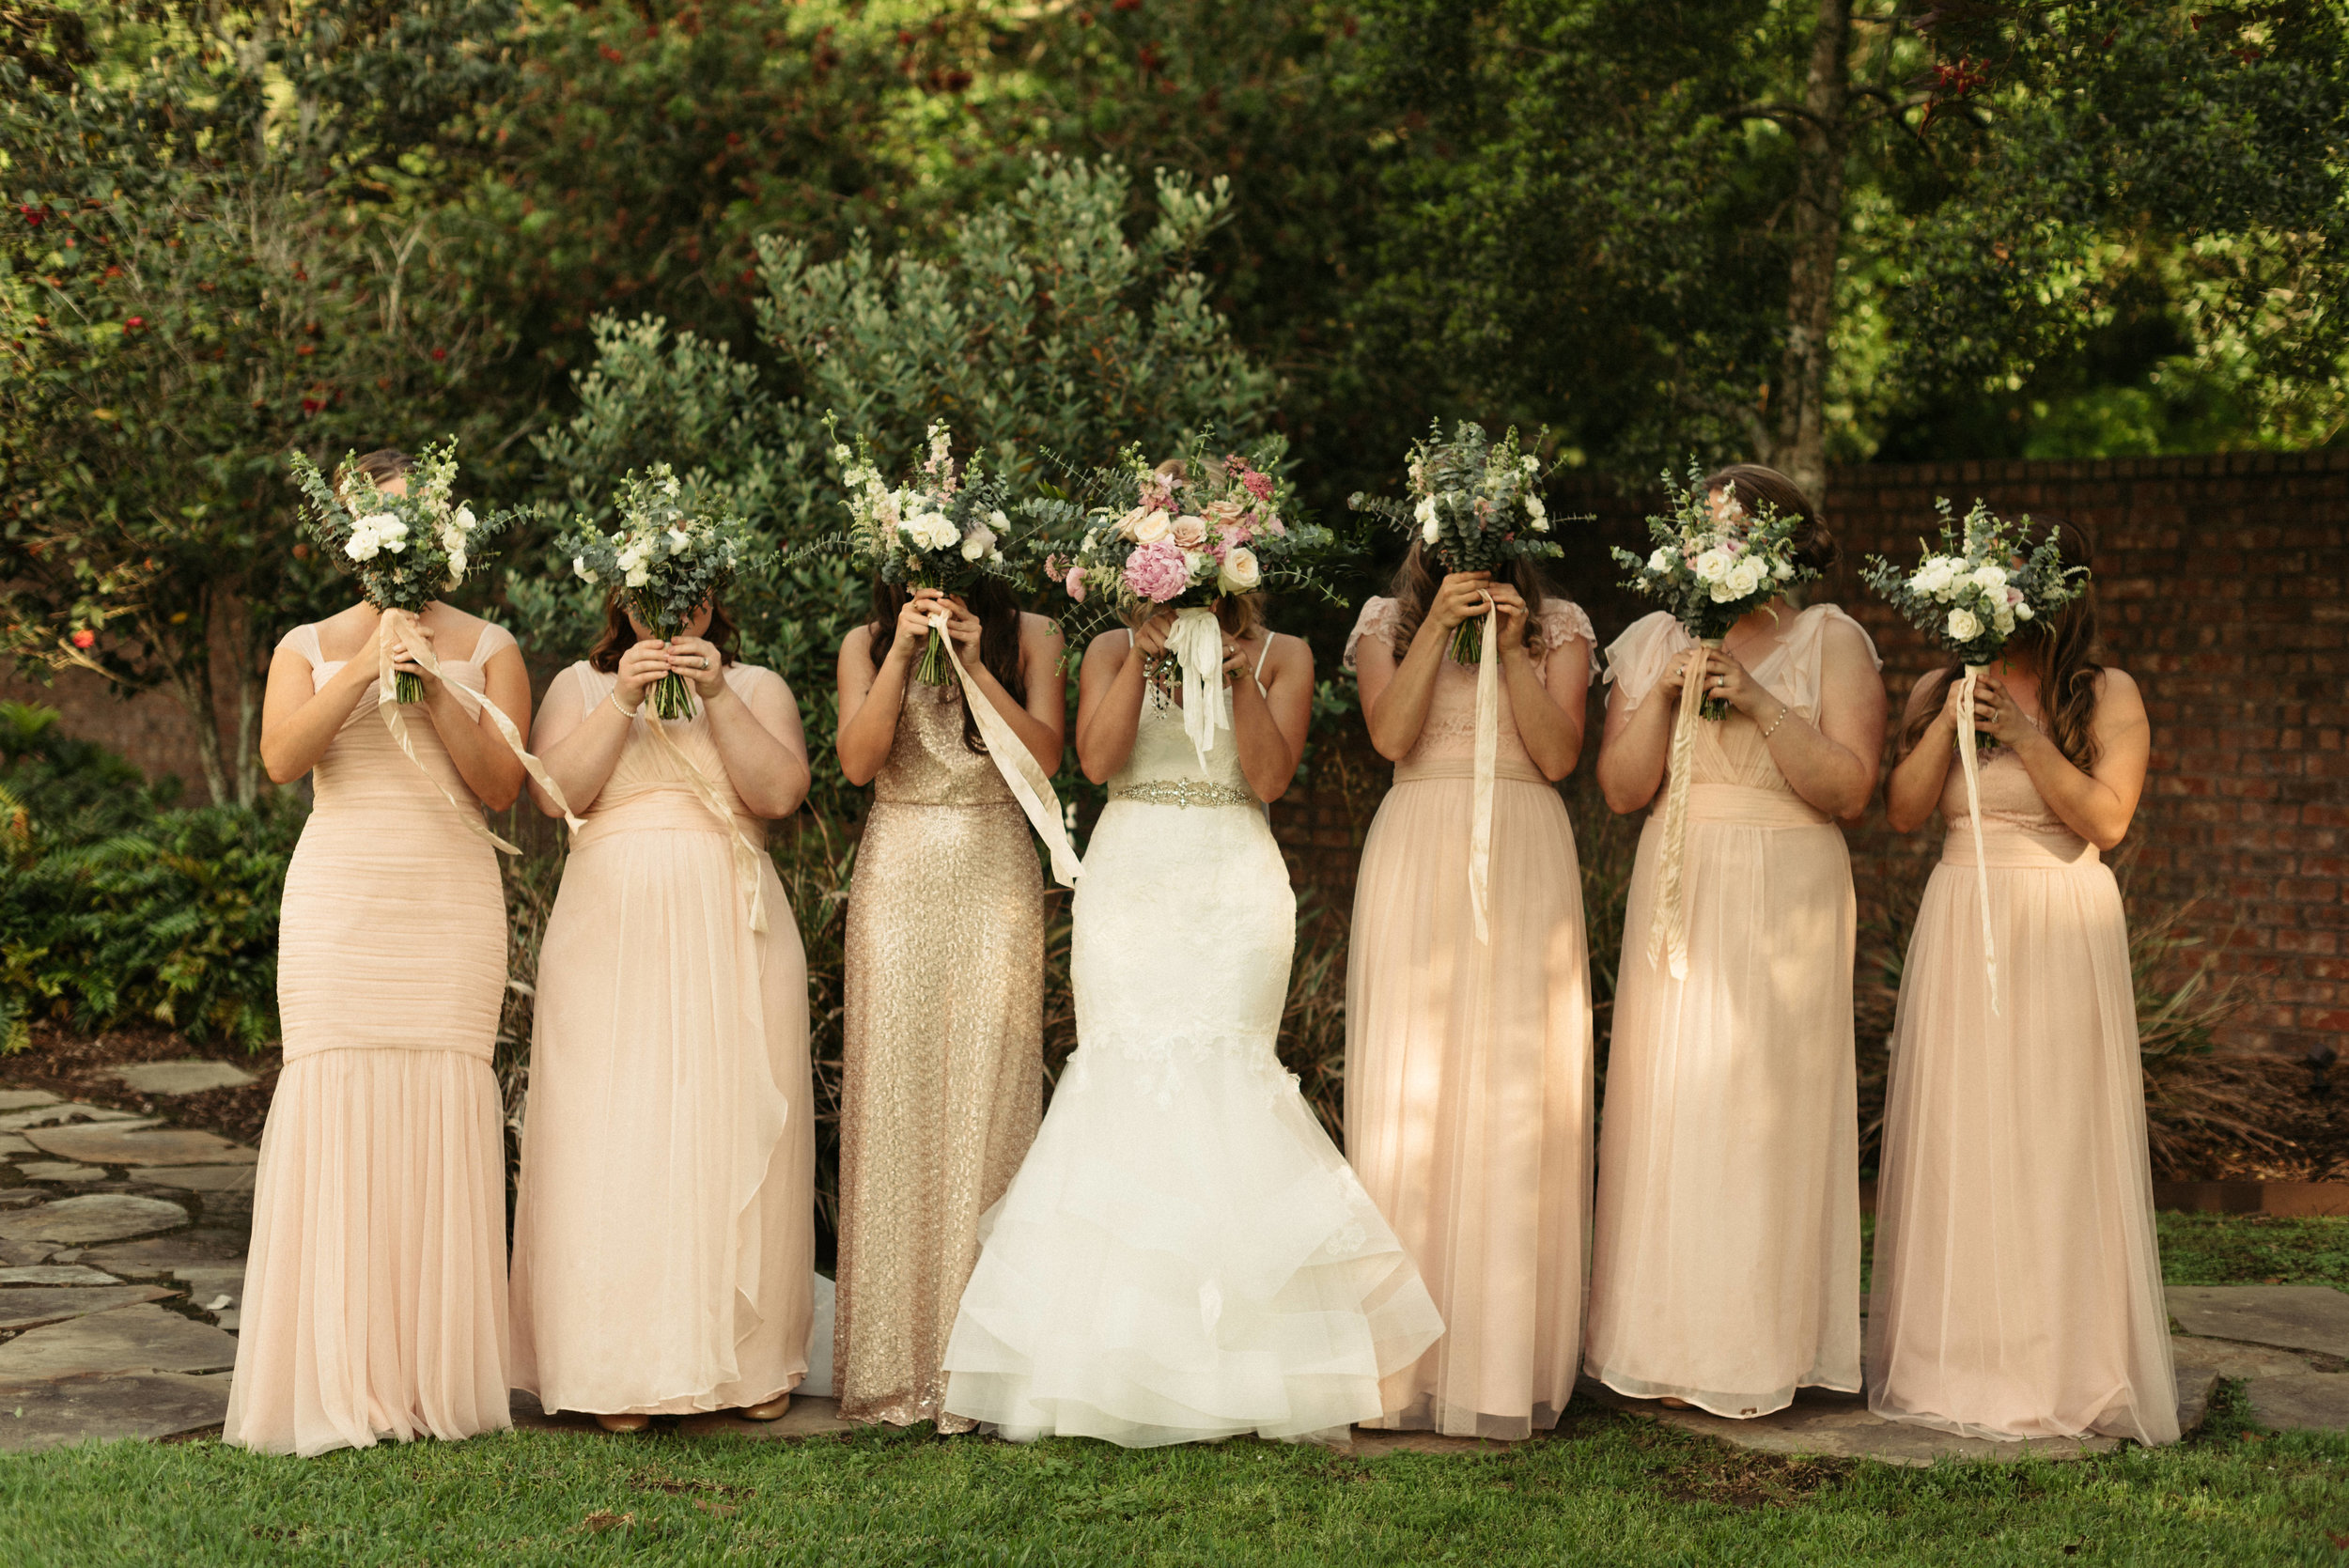 Southern Fete, Southern Wedding, Root Floral Design, Pink, White and Cream Floral Bouquet, Petroleum Club, Erin and Geoffrey Photography